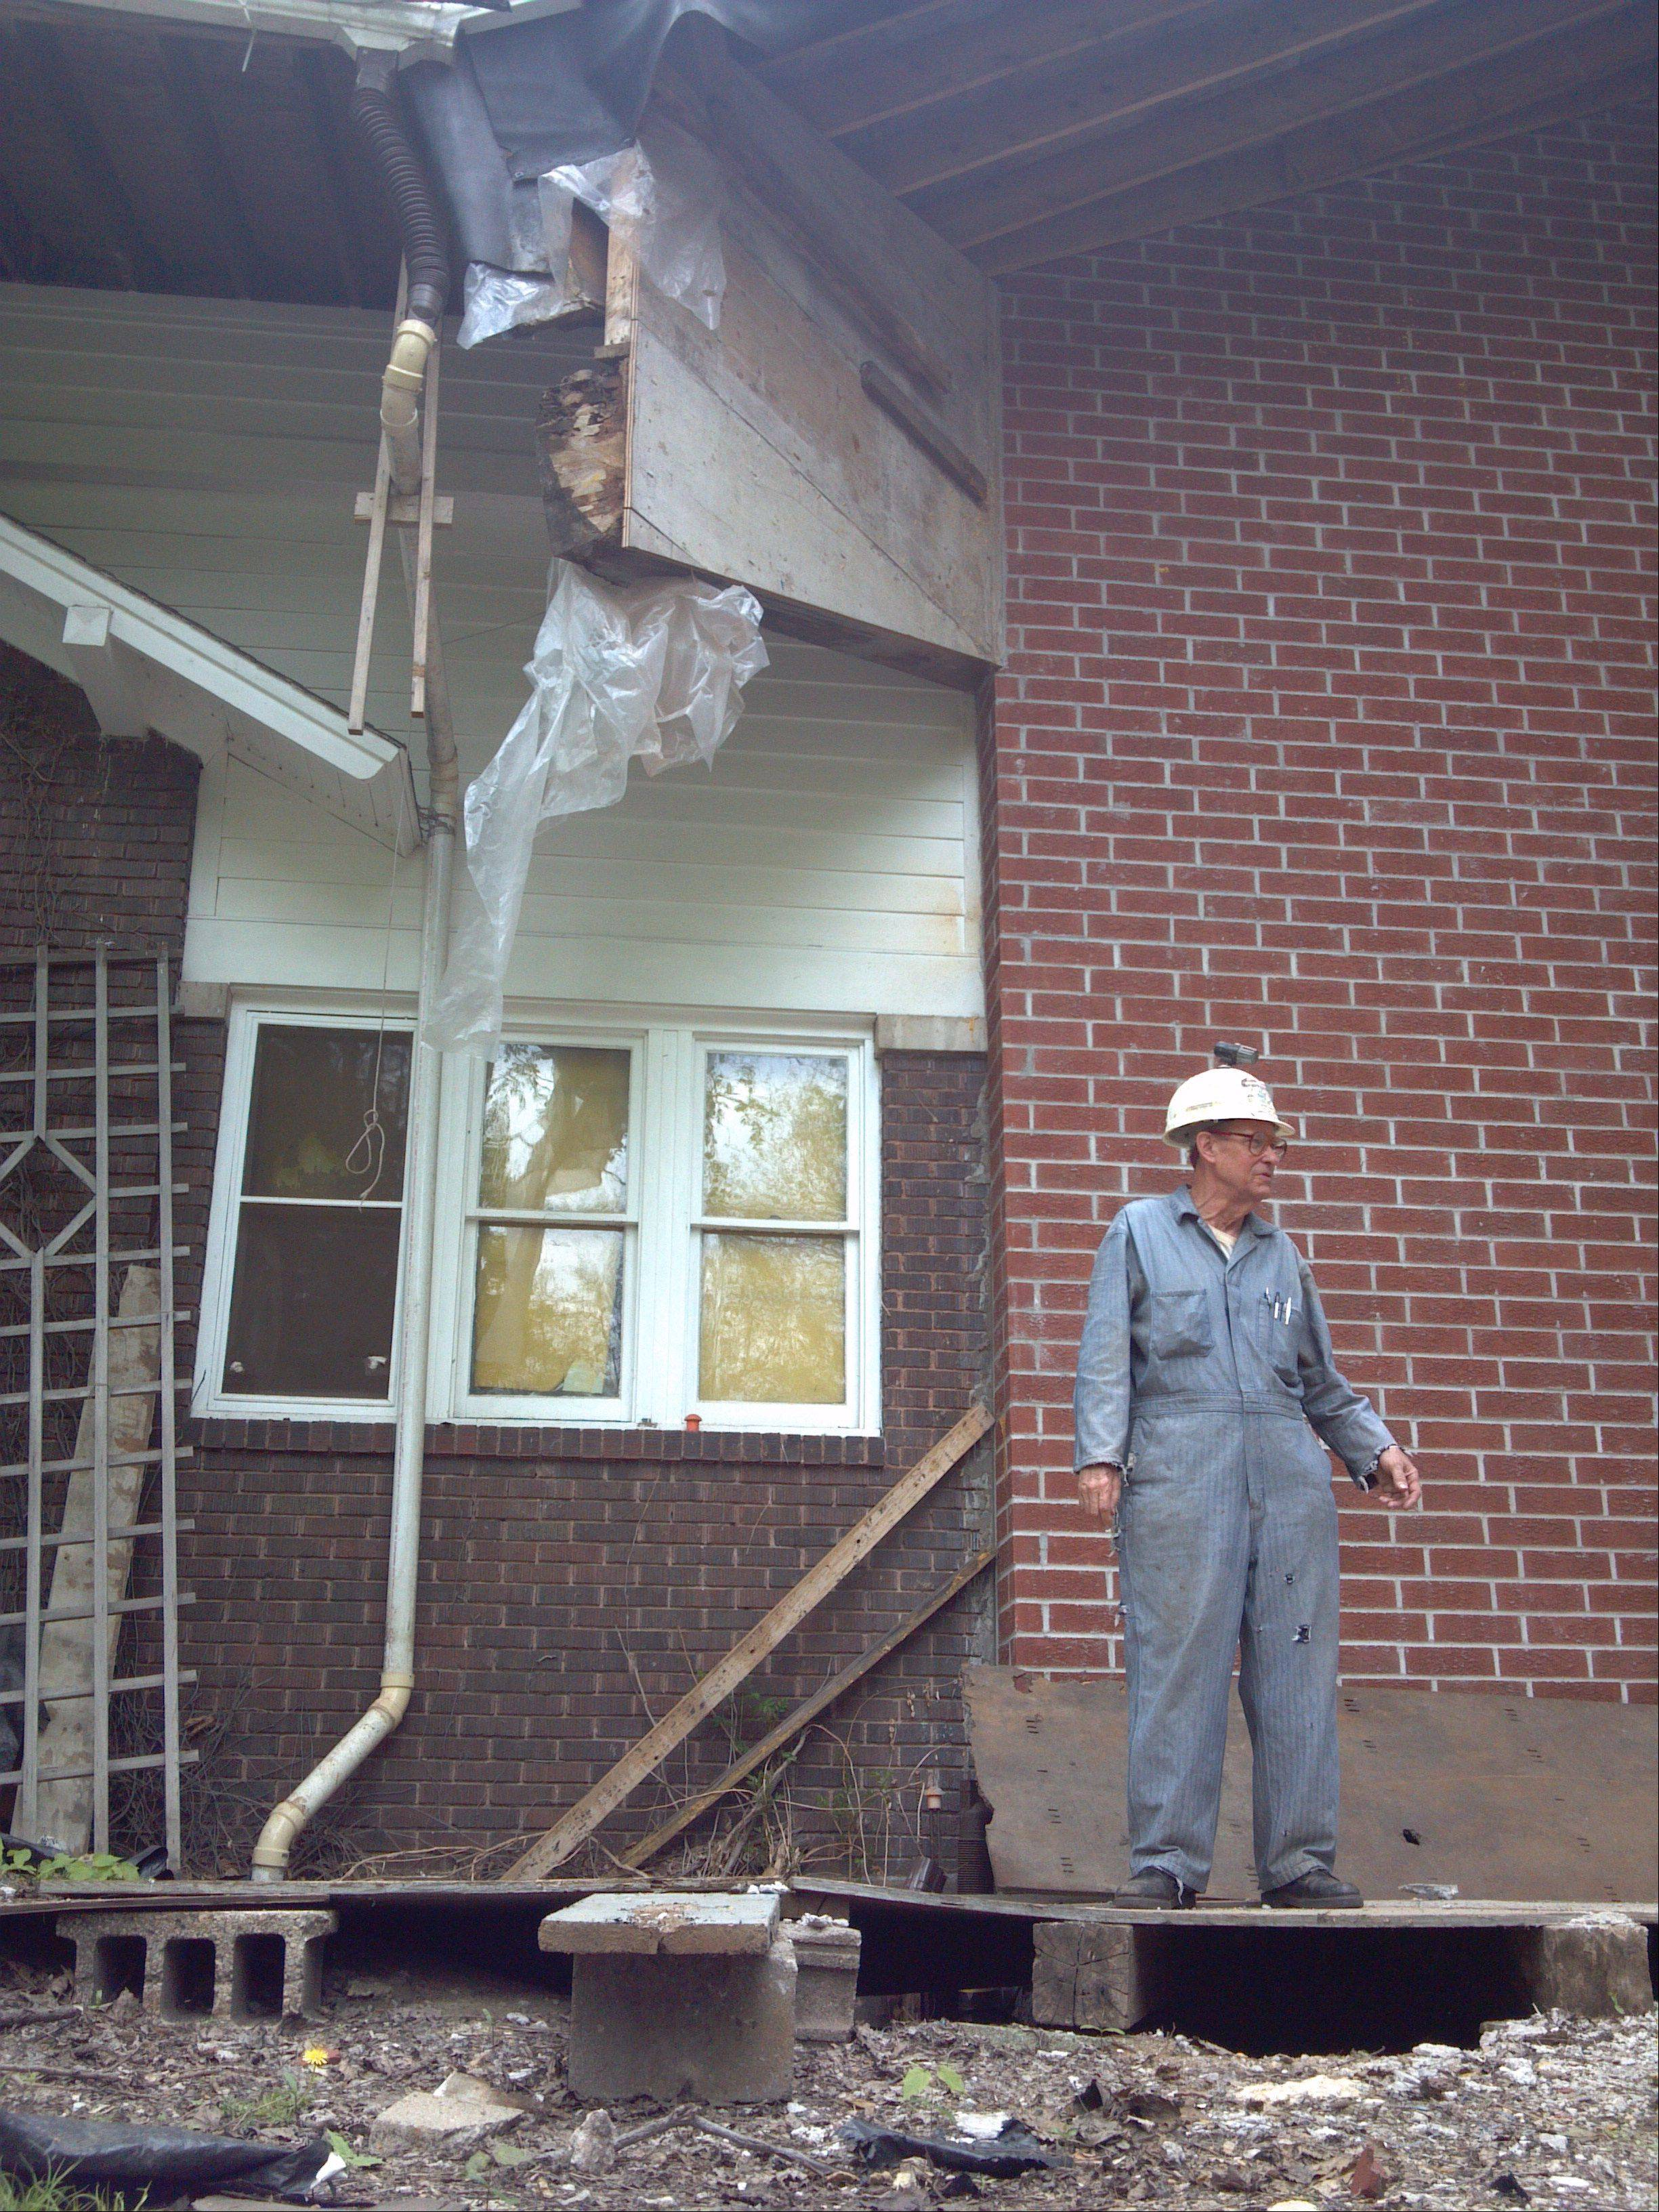 Cliff McIlvaine, who was sued by the city of St. Charles in an effort to get him to finish a project he began in 1975, stands on a landing between his original home to the left and new, super-insulated addition on the right.